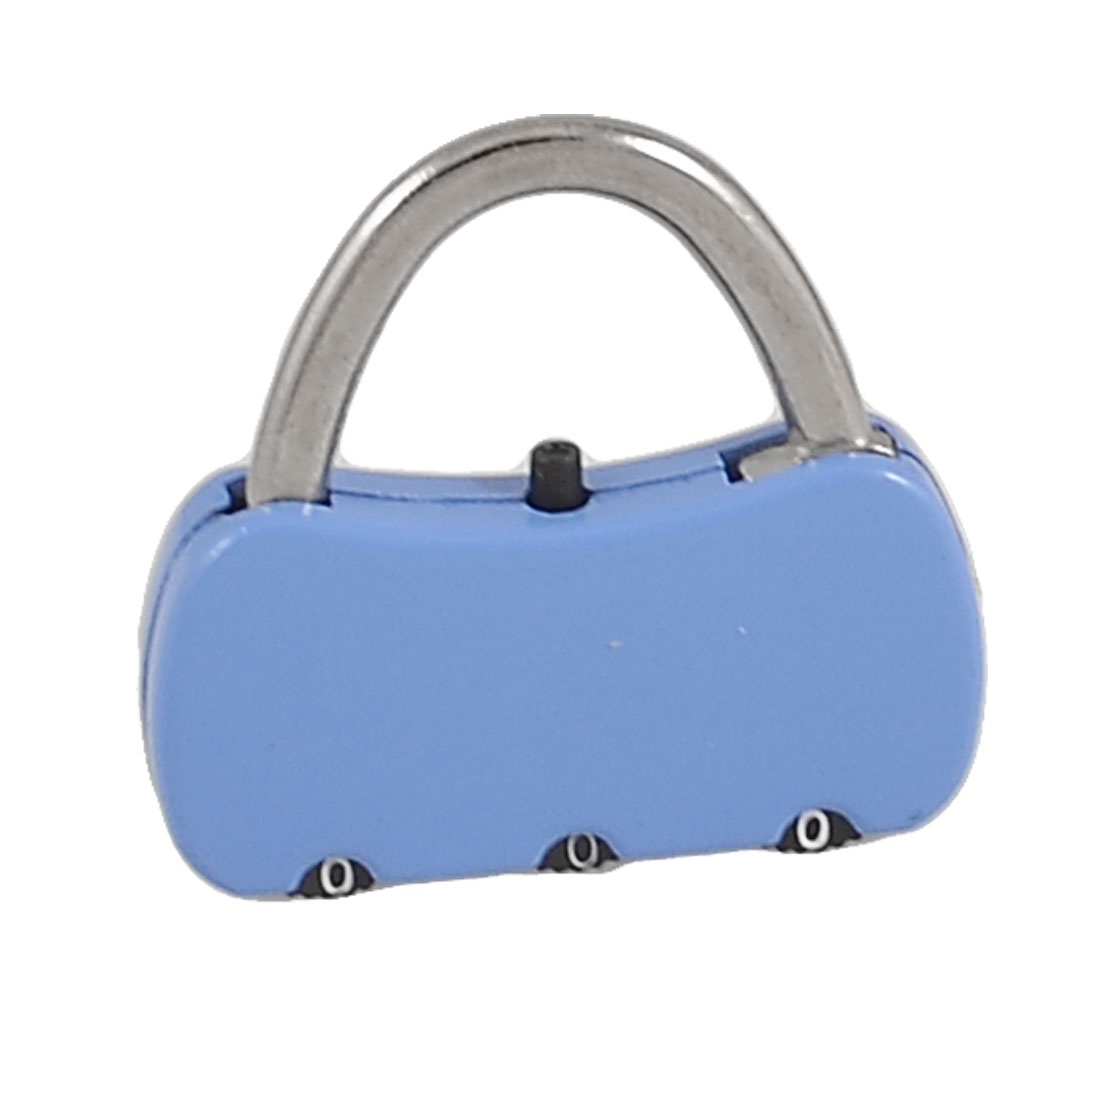 3.8cm x 3.6cm x 0.7cm 3 Digits Resettable Handbag Shape Travel Code Lock Blue